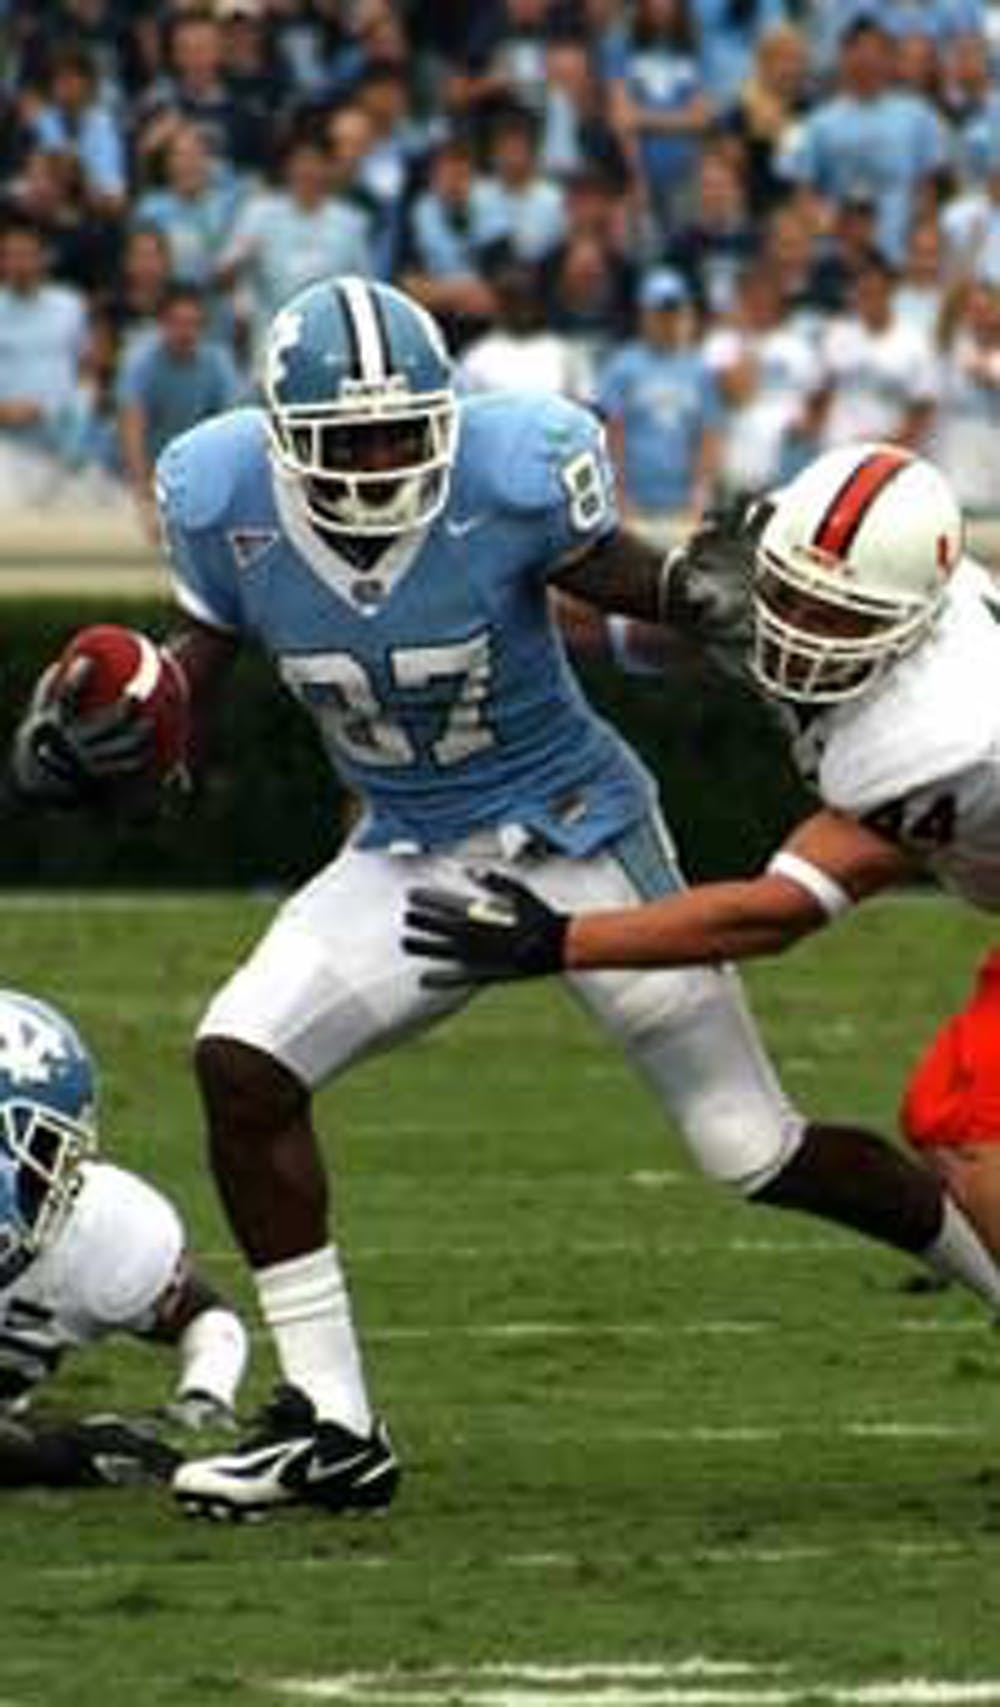 """UNC and Miami have played each other close in recent years"""" going 2-2 since the Hurricanes joined the ACC in 2003. Last year the Tar Heels ended up on top 33-27."""